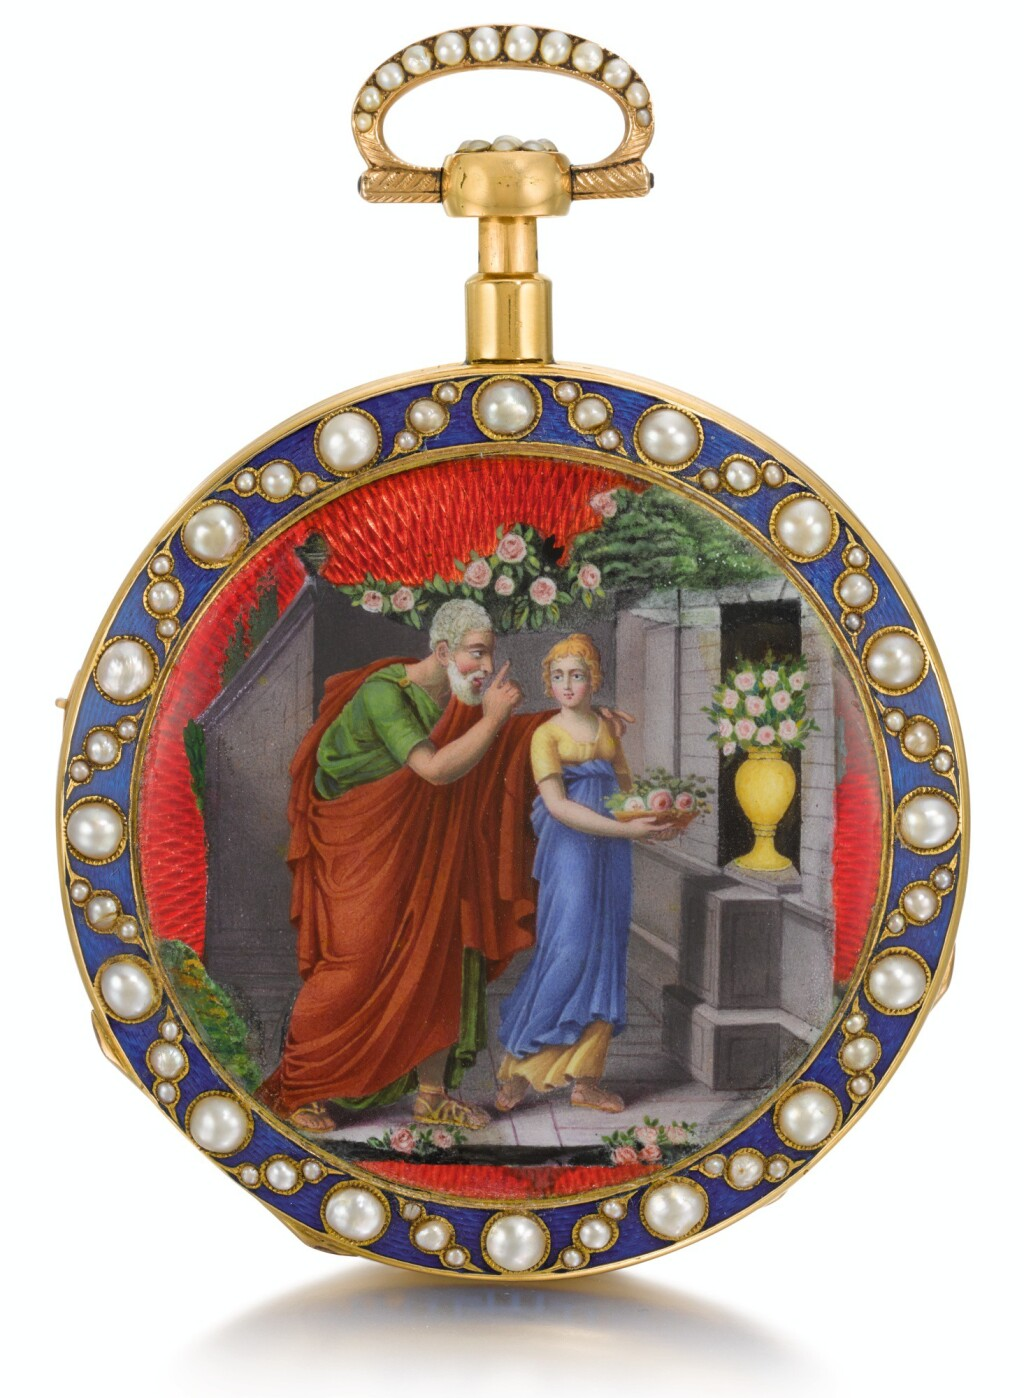 'THE OFFERING'  SWISS | A GOLD, ENAMEL AND PEARL-SET QUARTER REPEATING MUSICAL WATCH MADE FOR THE CHINESE MARKET  CIRCA 1820